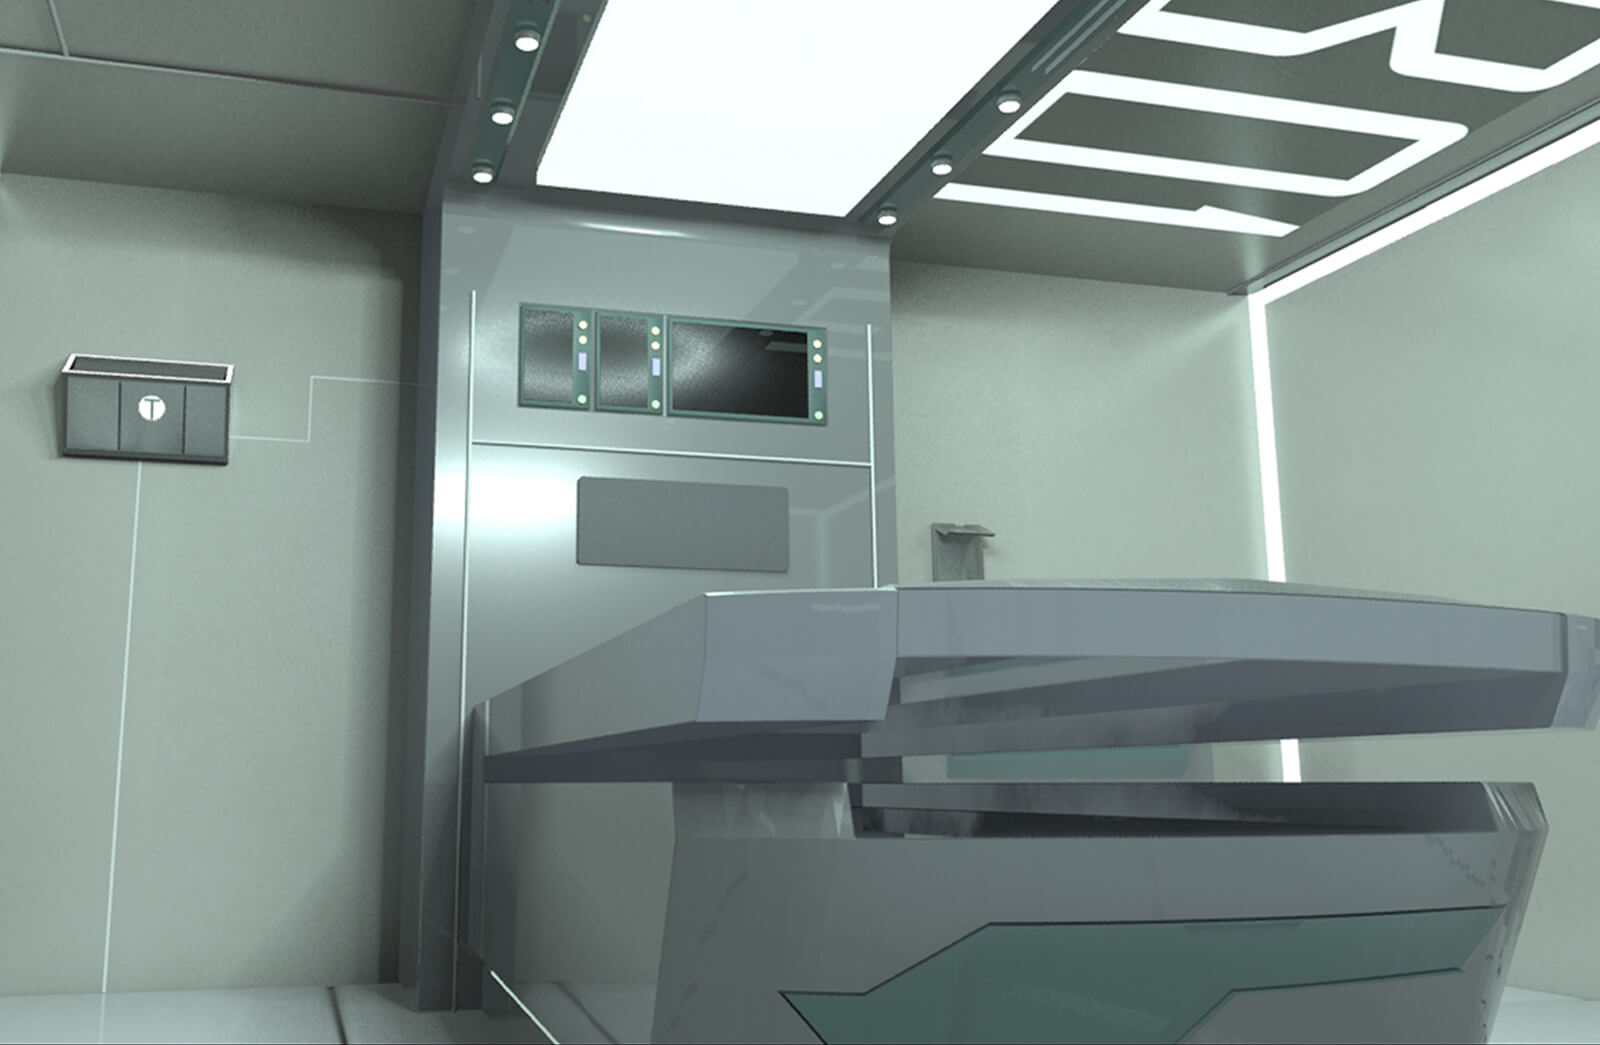 Render of a futuristic medical bay with an examining table, wall displays and lighting